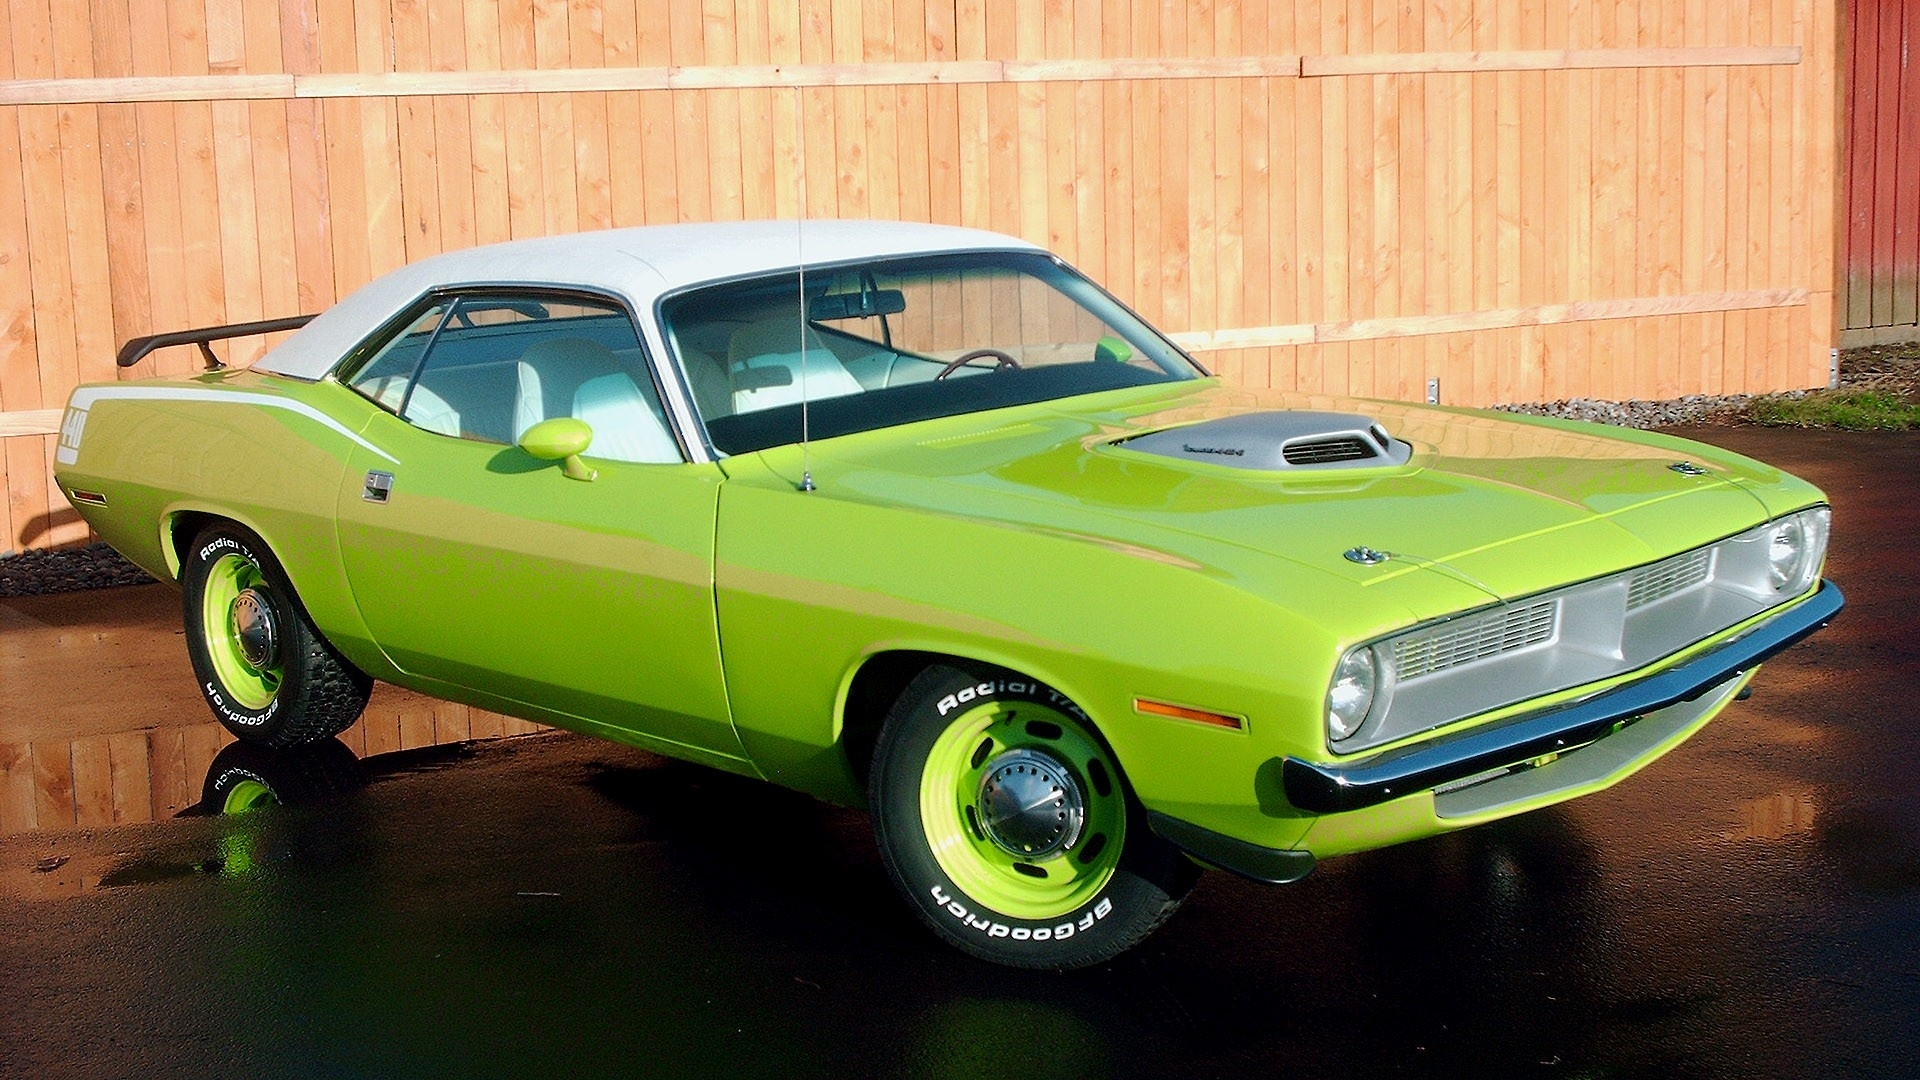 Muscle cars usa plymouth barracuda classic vehicles auto old retro ...